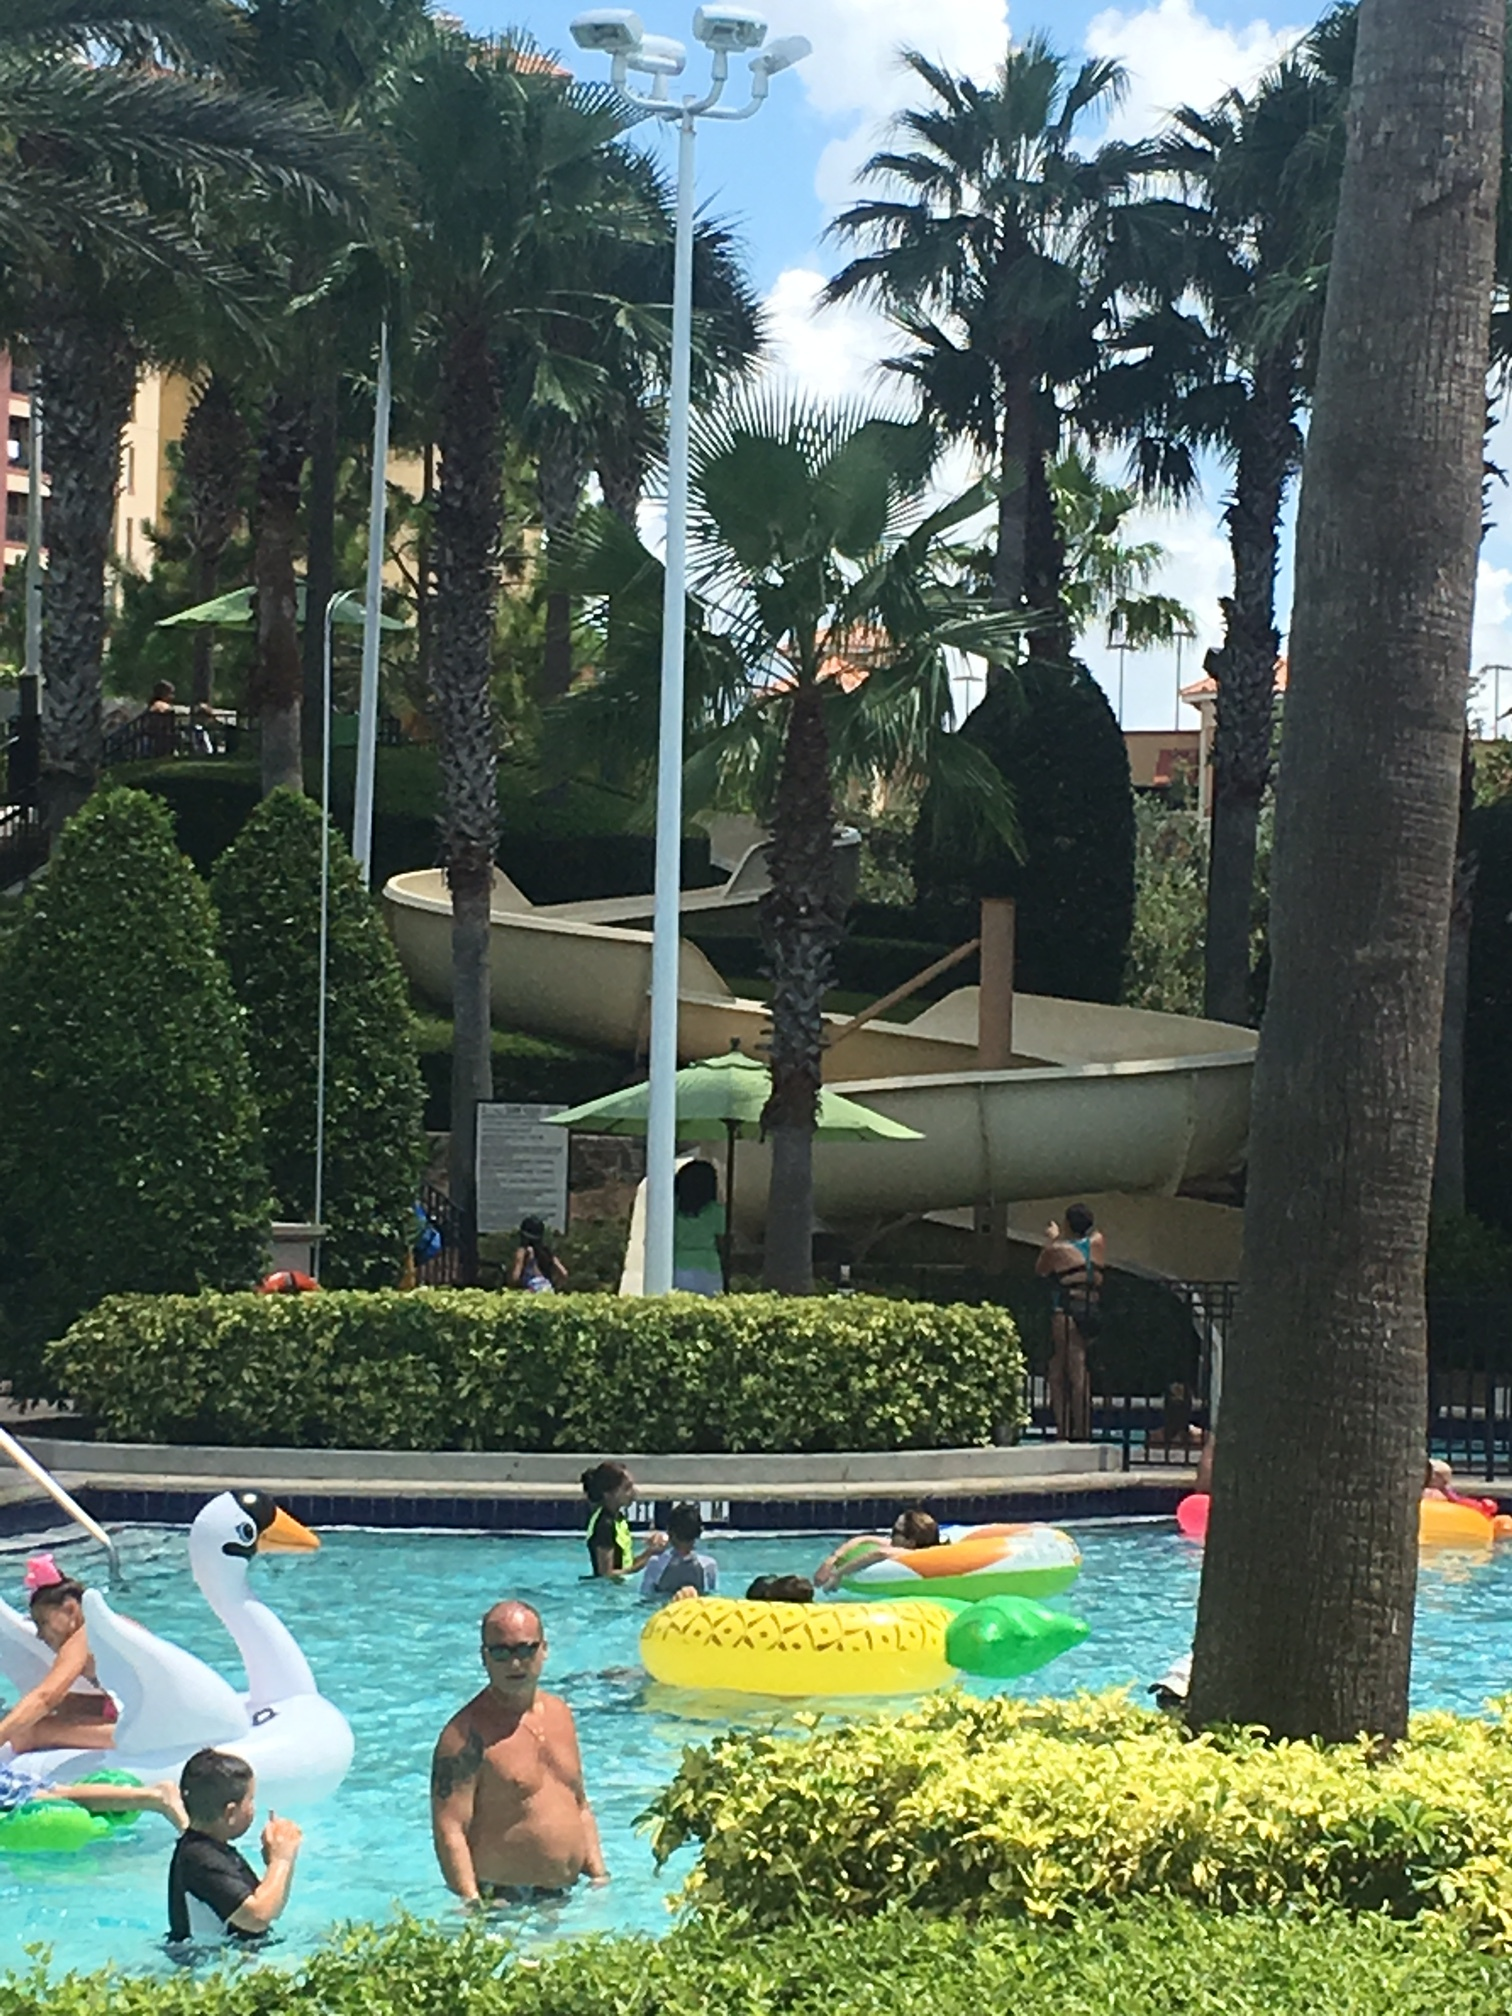 Swim or Slide? - Staycations are about trying new things. Go for it!